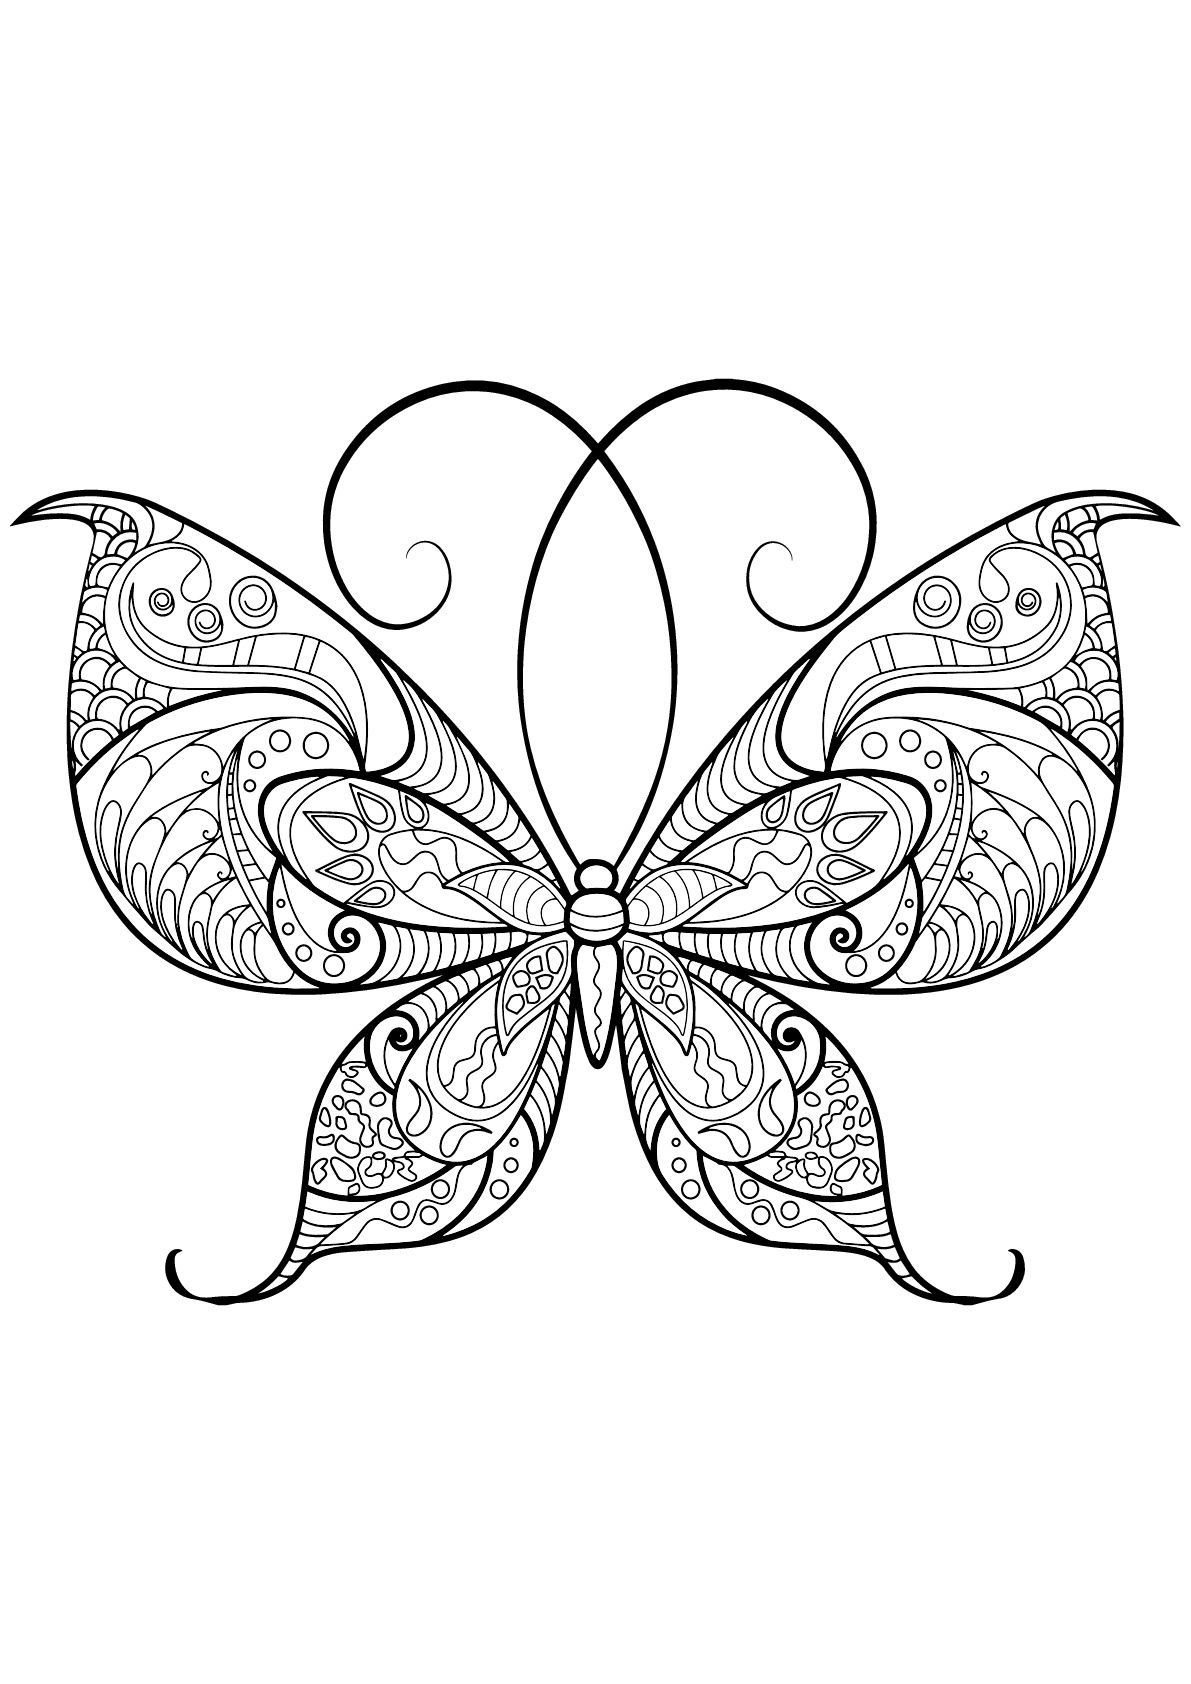 Butterfly beautiful patterns 13 - Butterflies & insects Adult ...